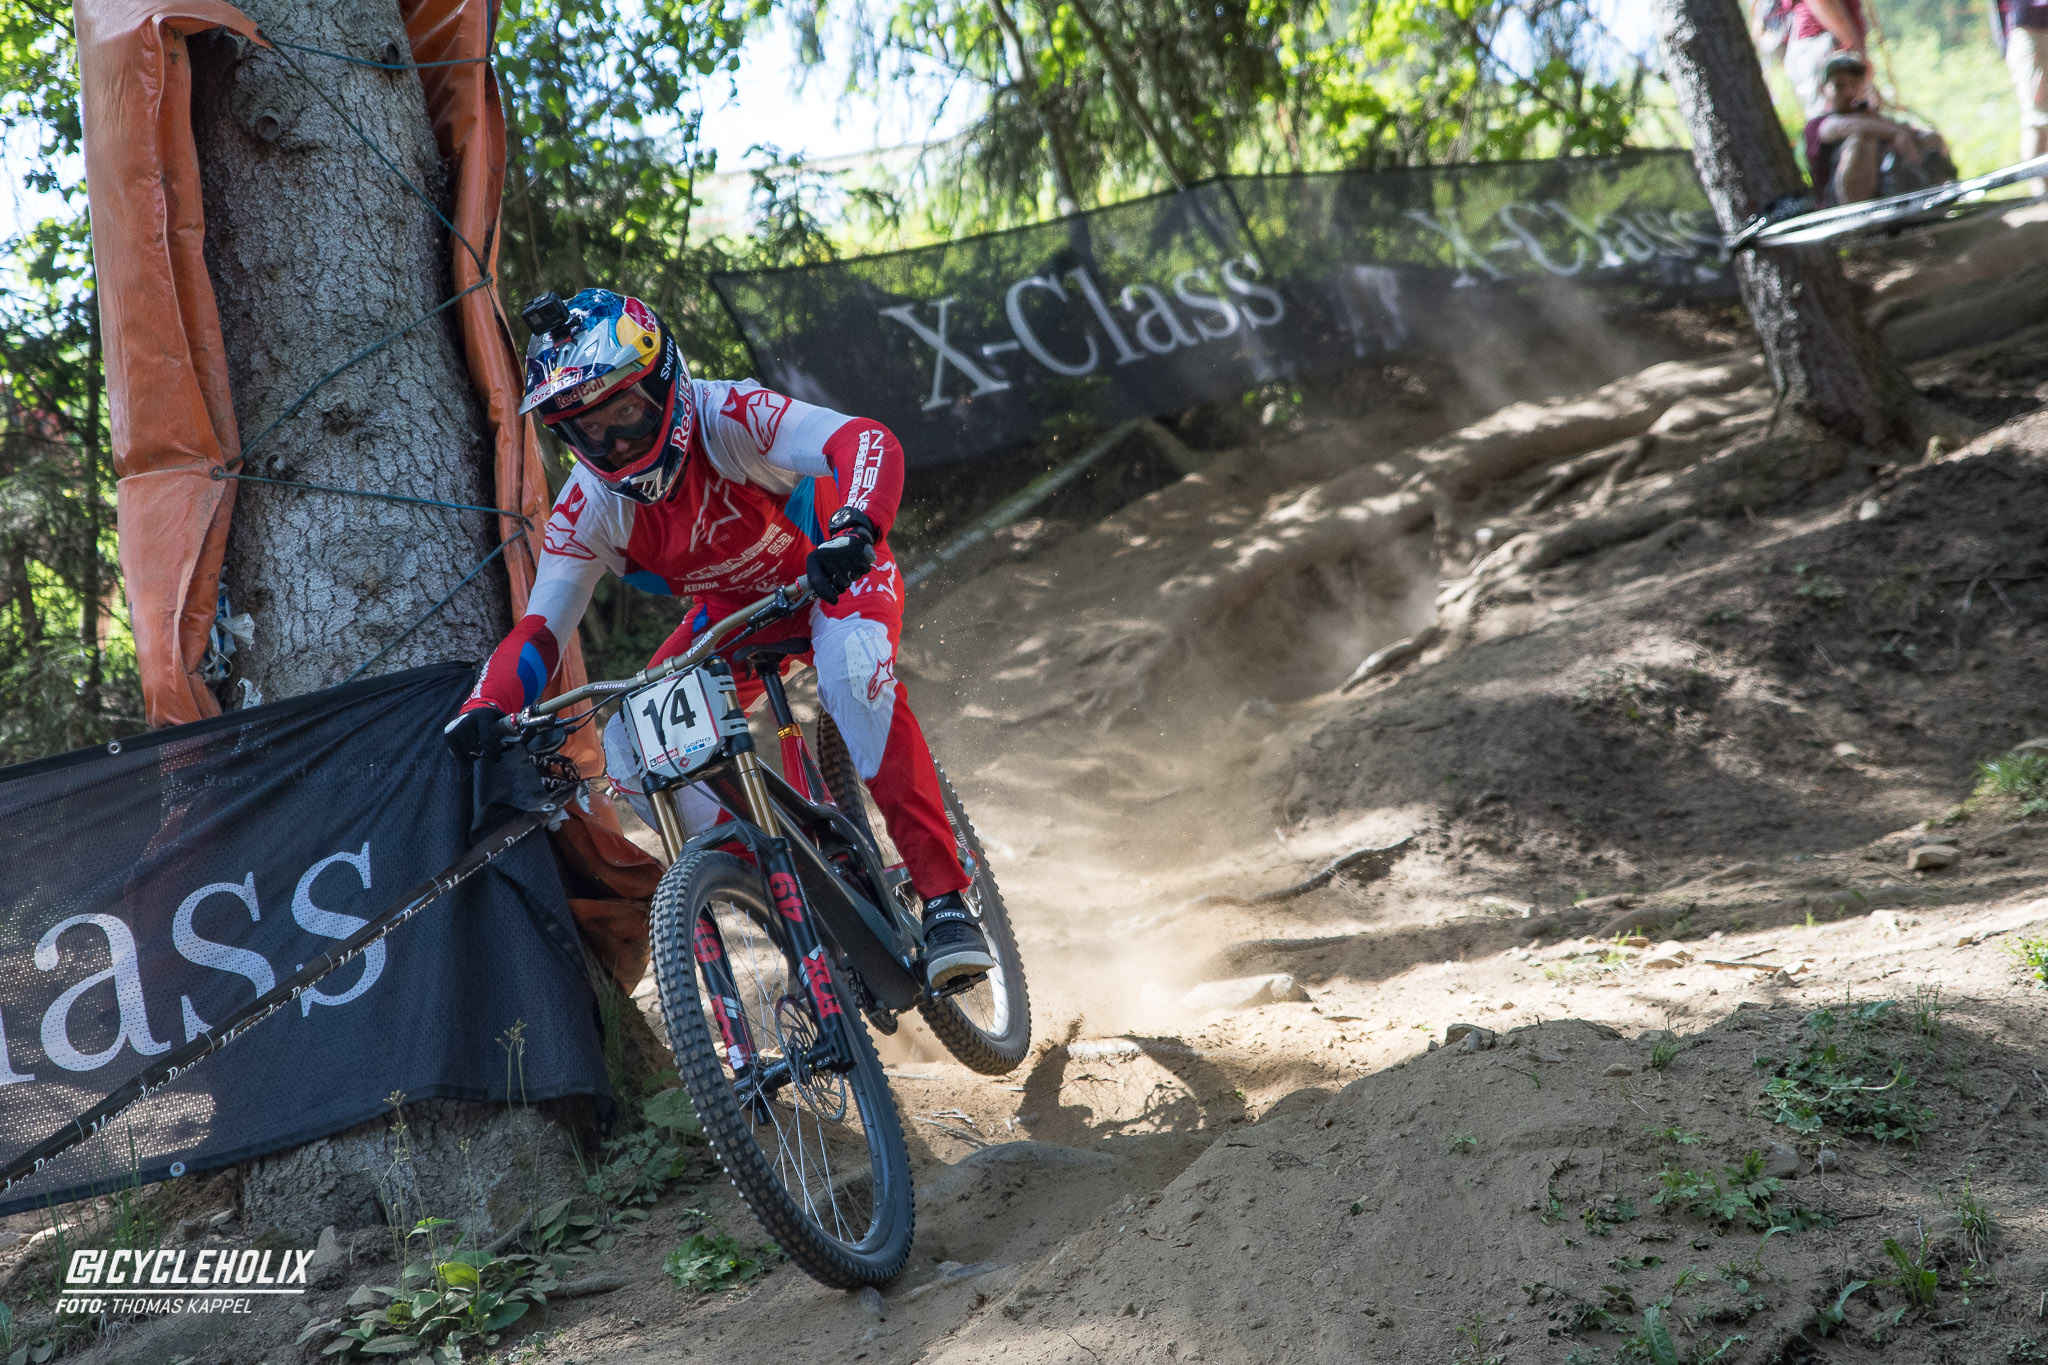 2019 Downhill Worldcup Leogang Finale Action 7 Cycleholix